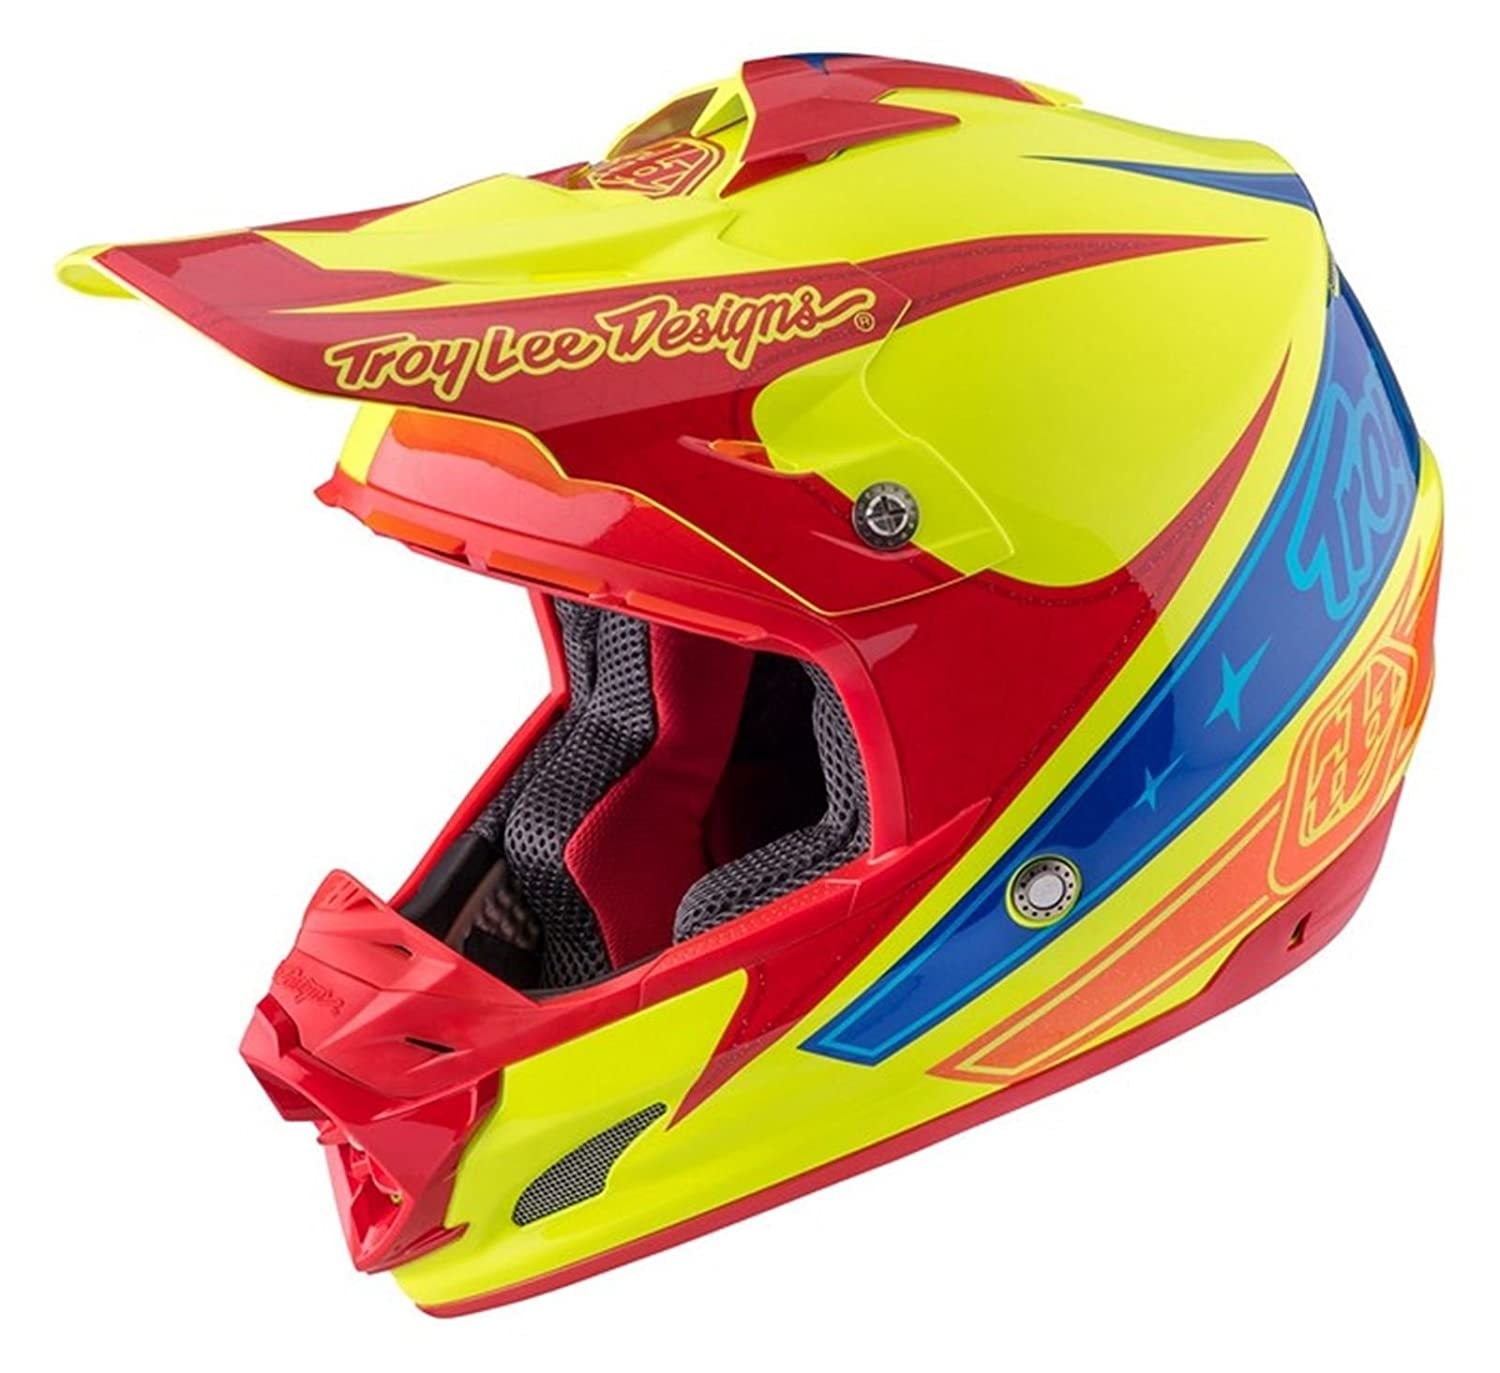 Troy Lee Designs amarillo 2017 SE3 Corse 2 MX Casco: Troy Lee Designs: Amazon.es: Coche y moto